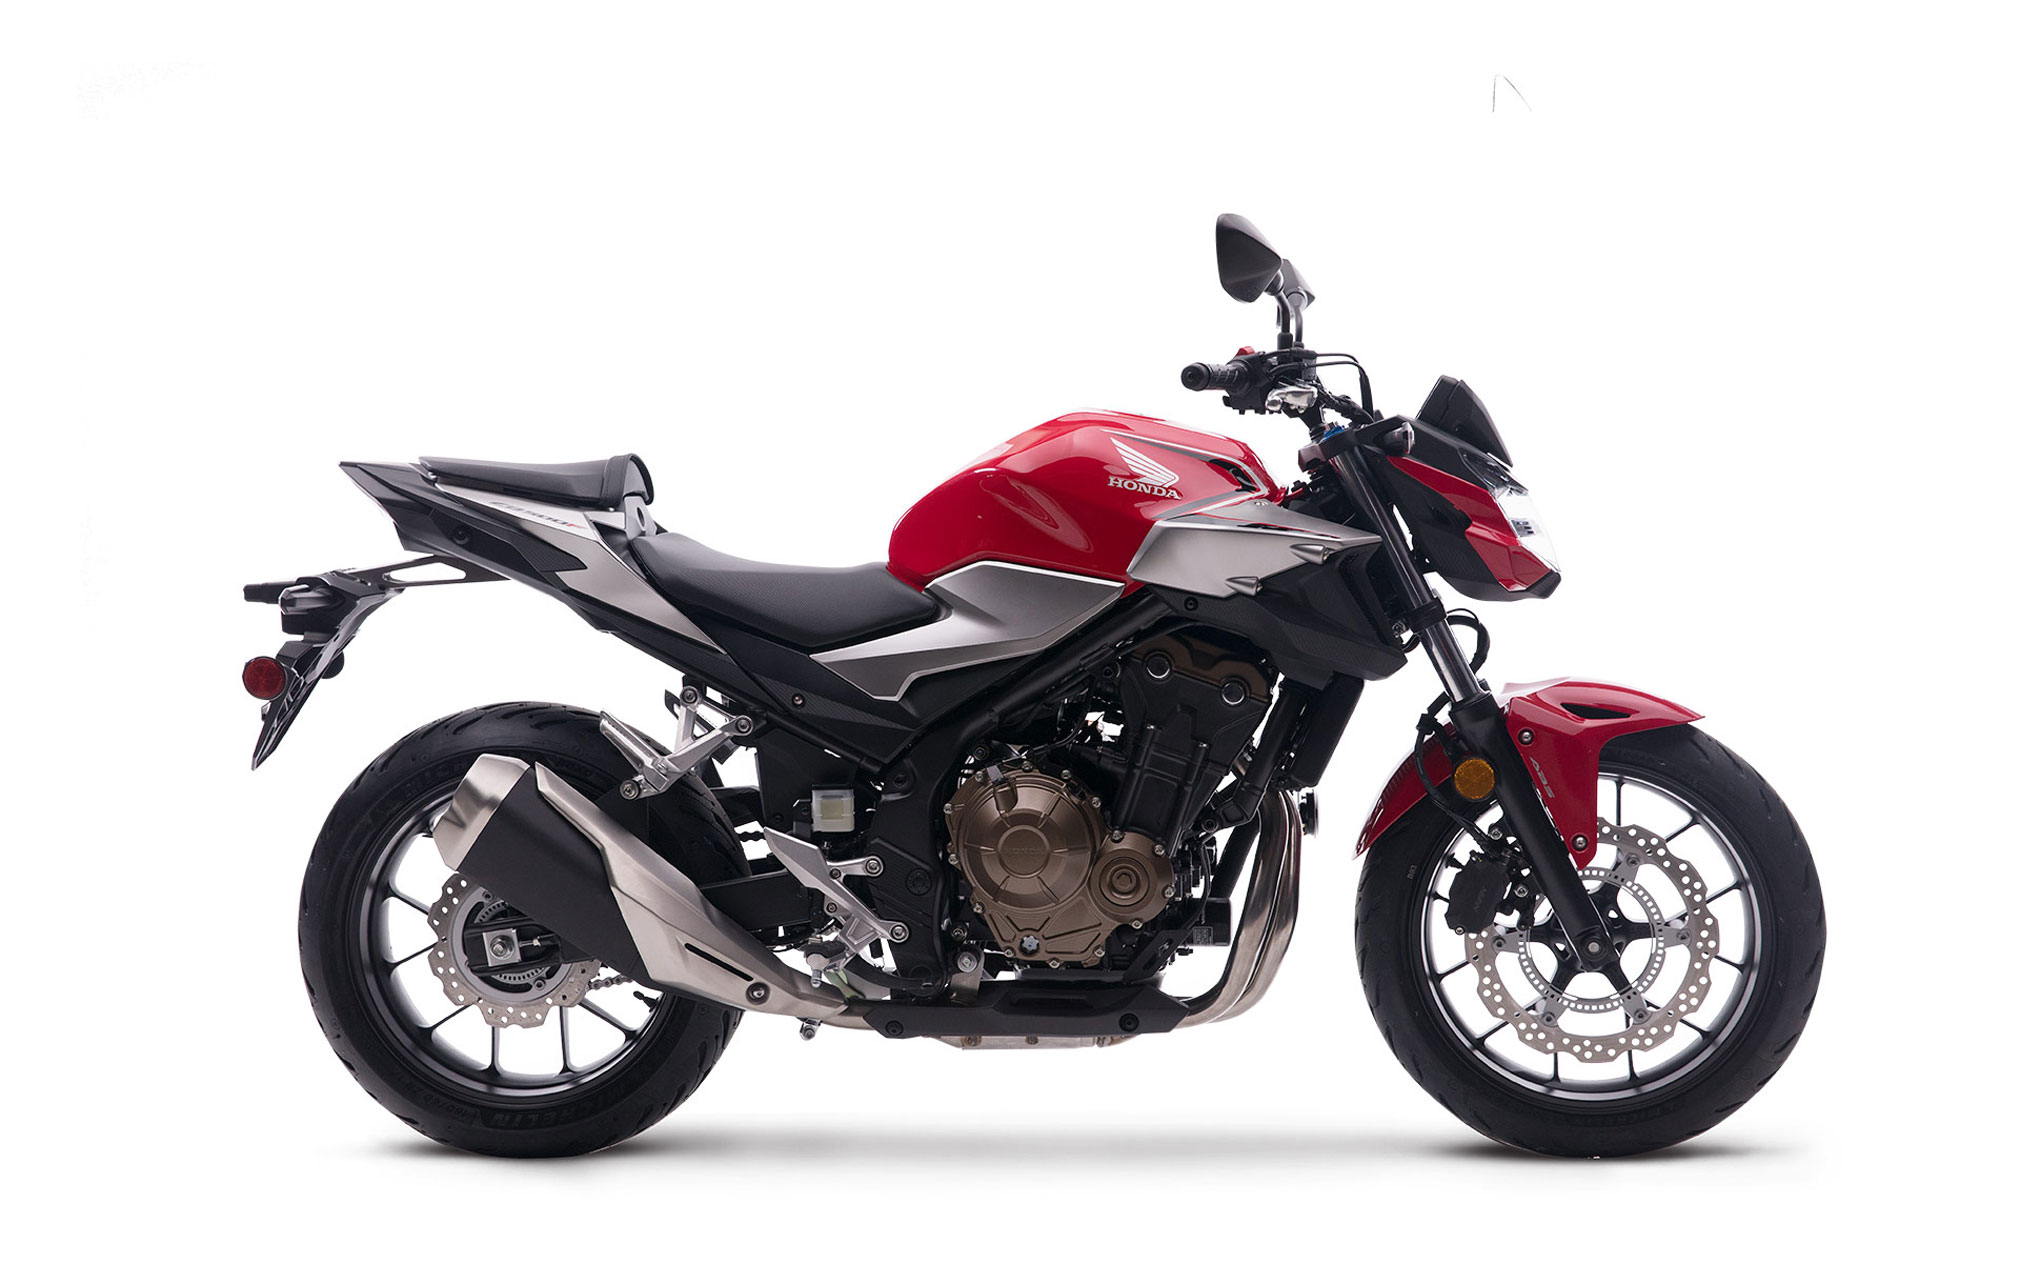 2020 honda cb500f abs guide • total motorcycle